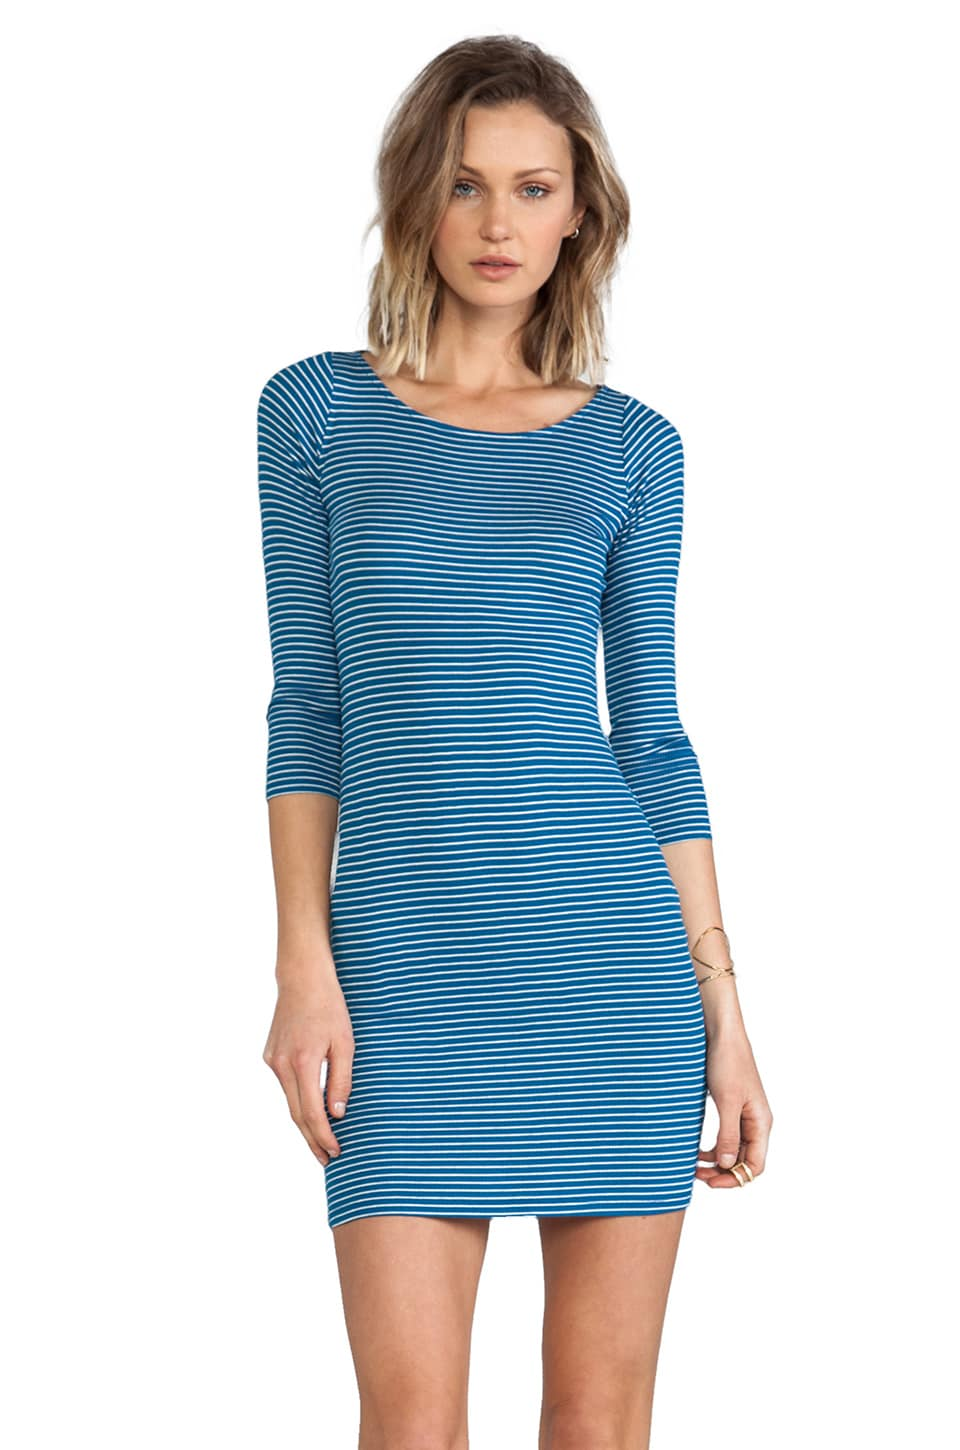 Rachel Pally Rib 3/4 Sleeve Bianca Dress in Blue Stripe